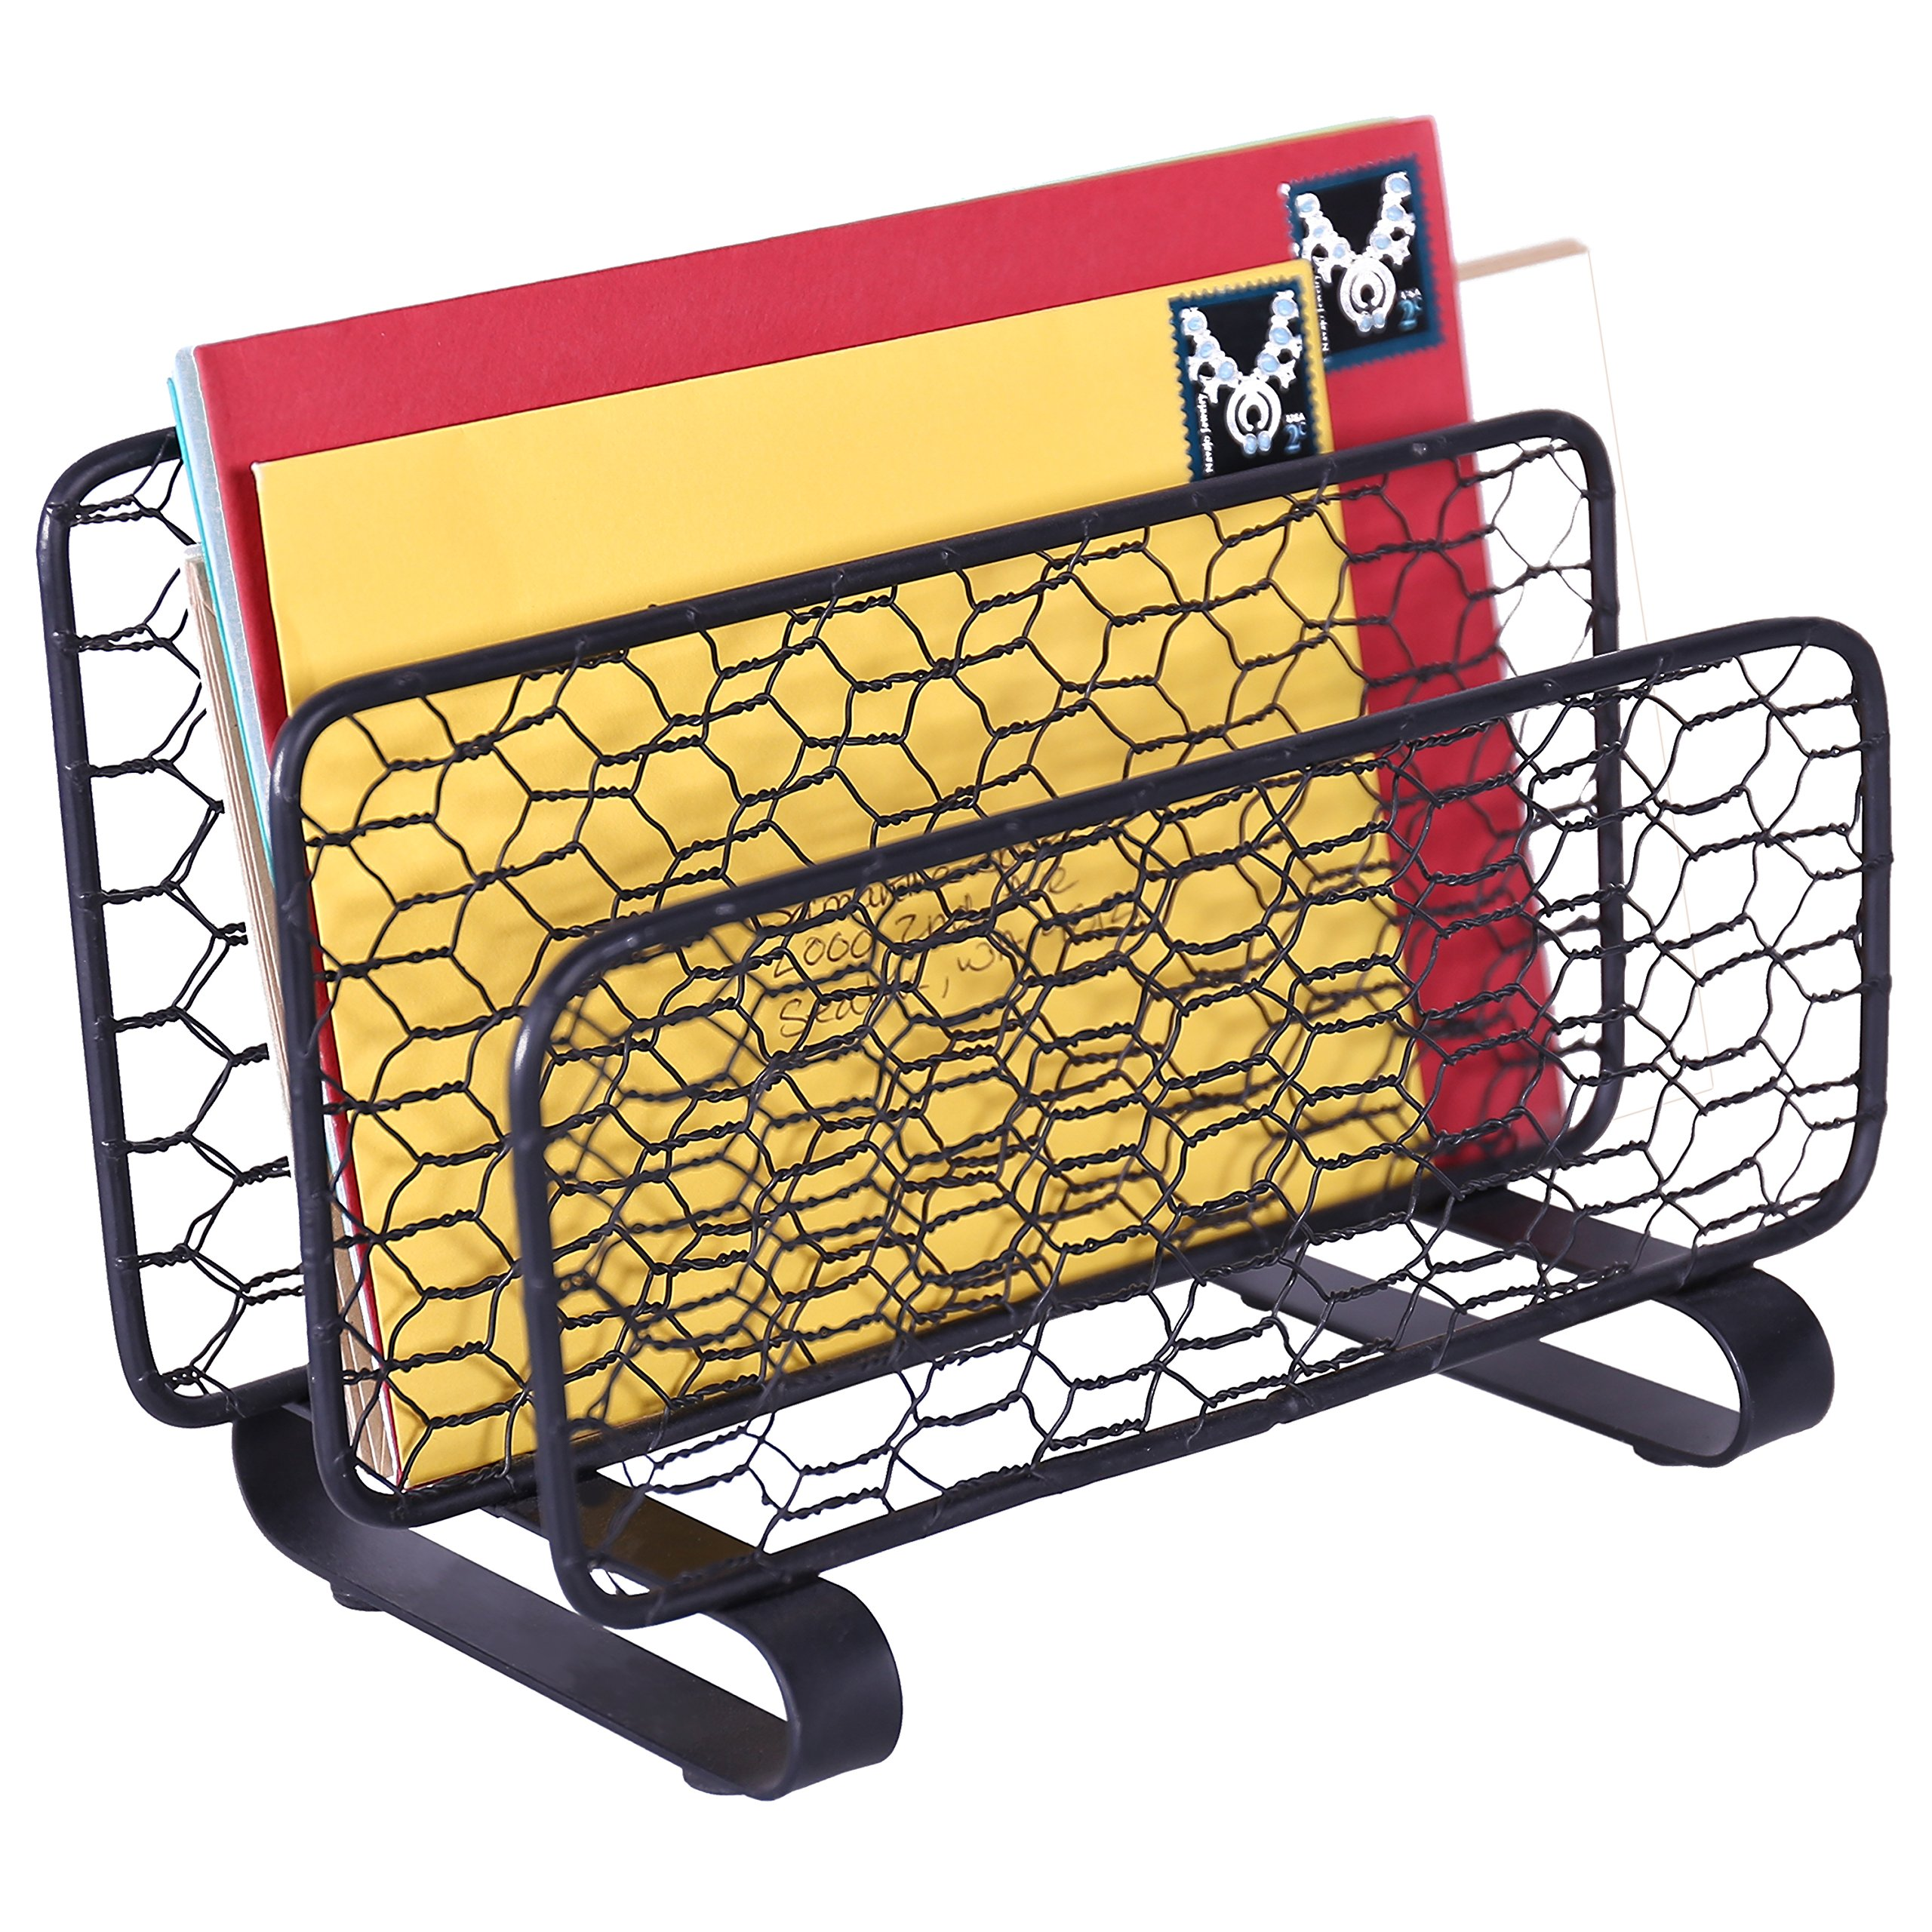 MyGift Black Chicken Wire Mesh Mail Holder / Letter Sorter Desk Accessory